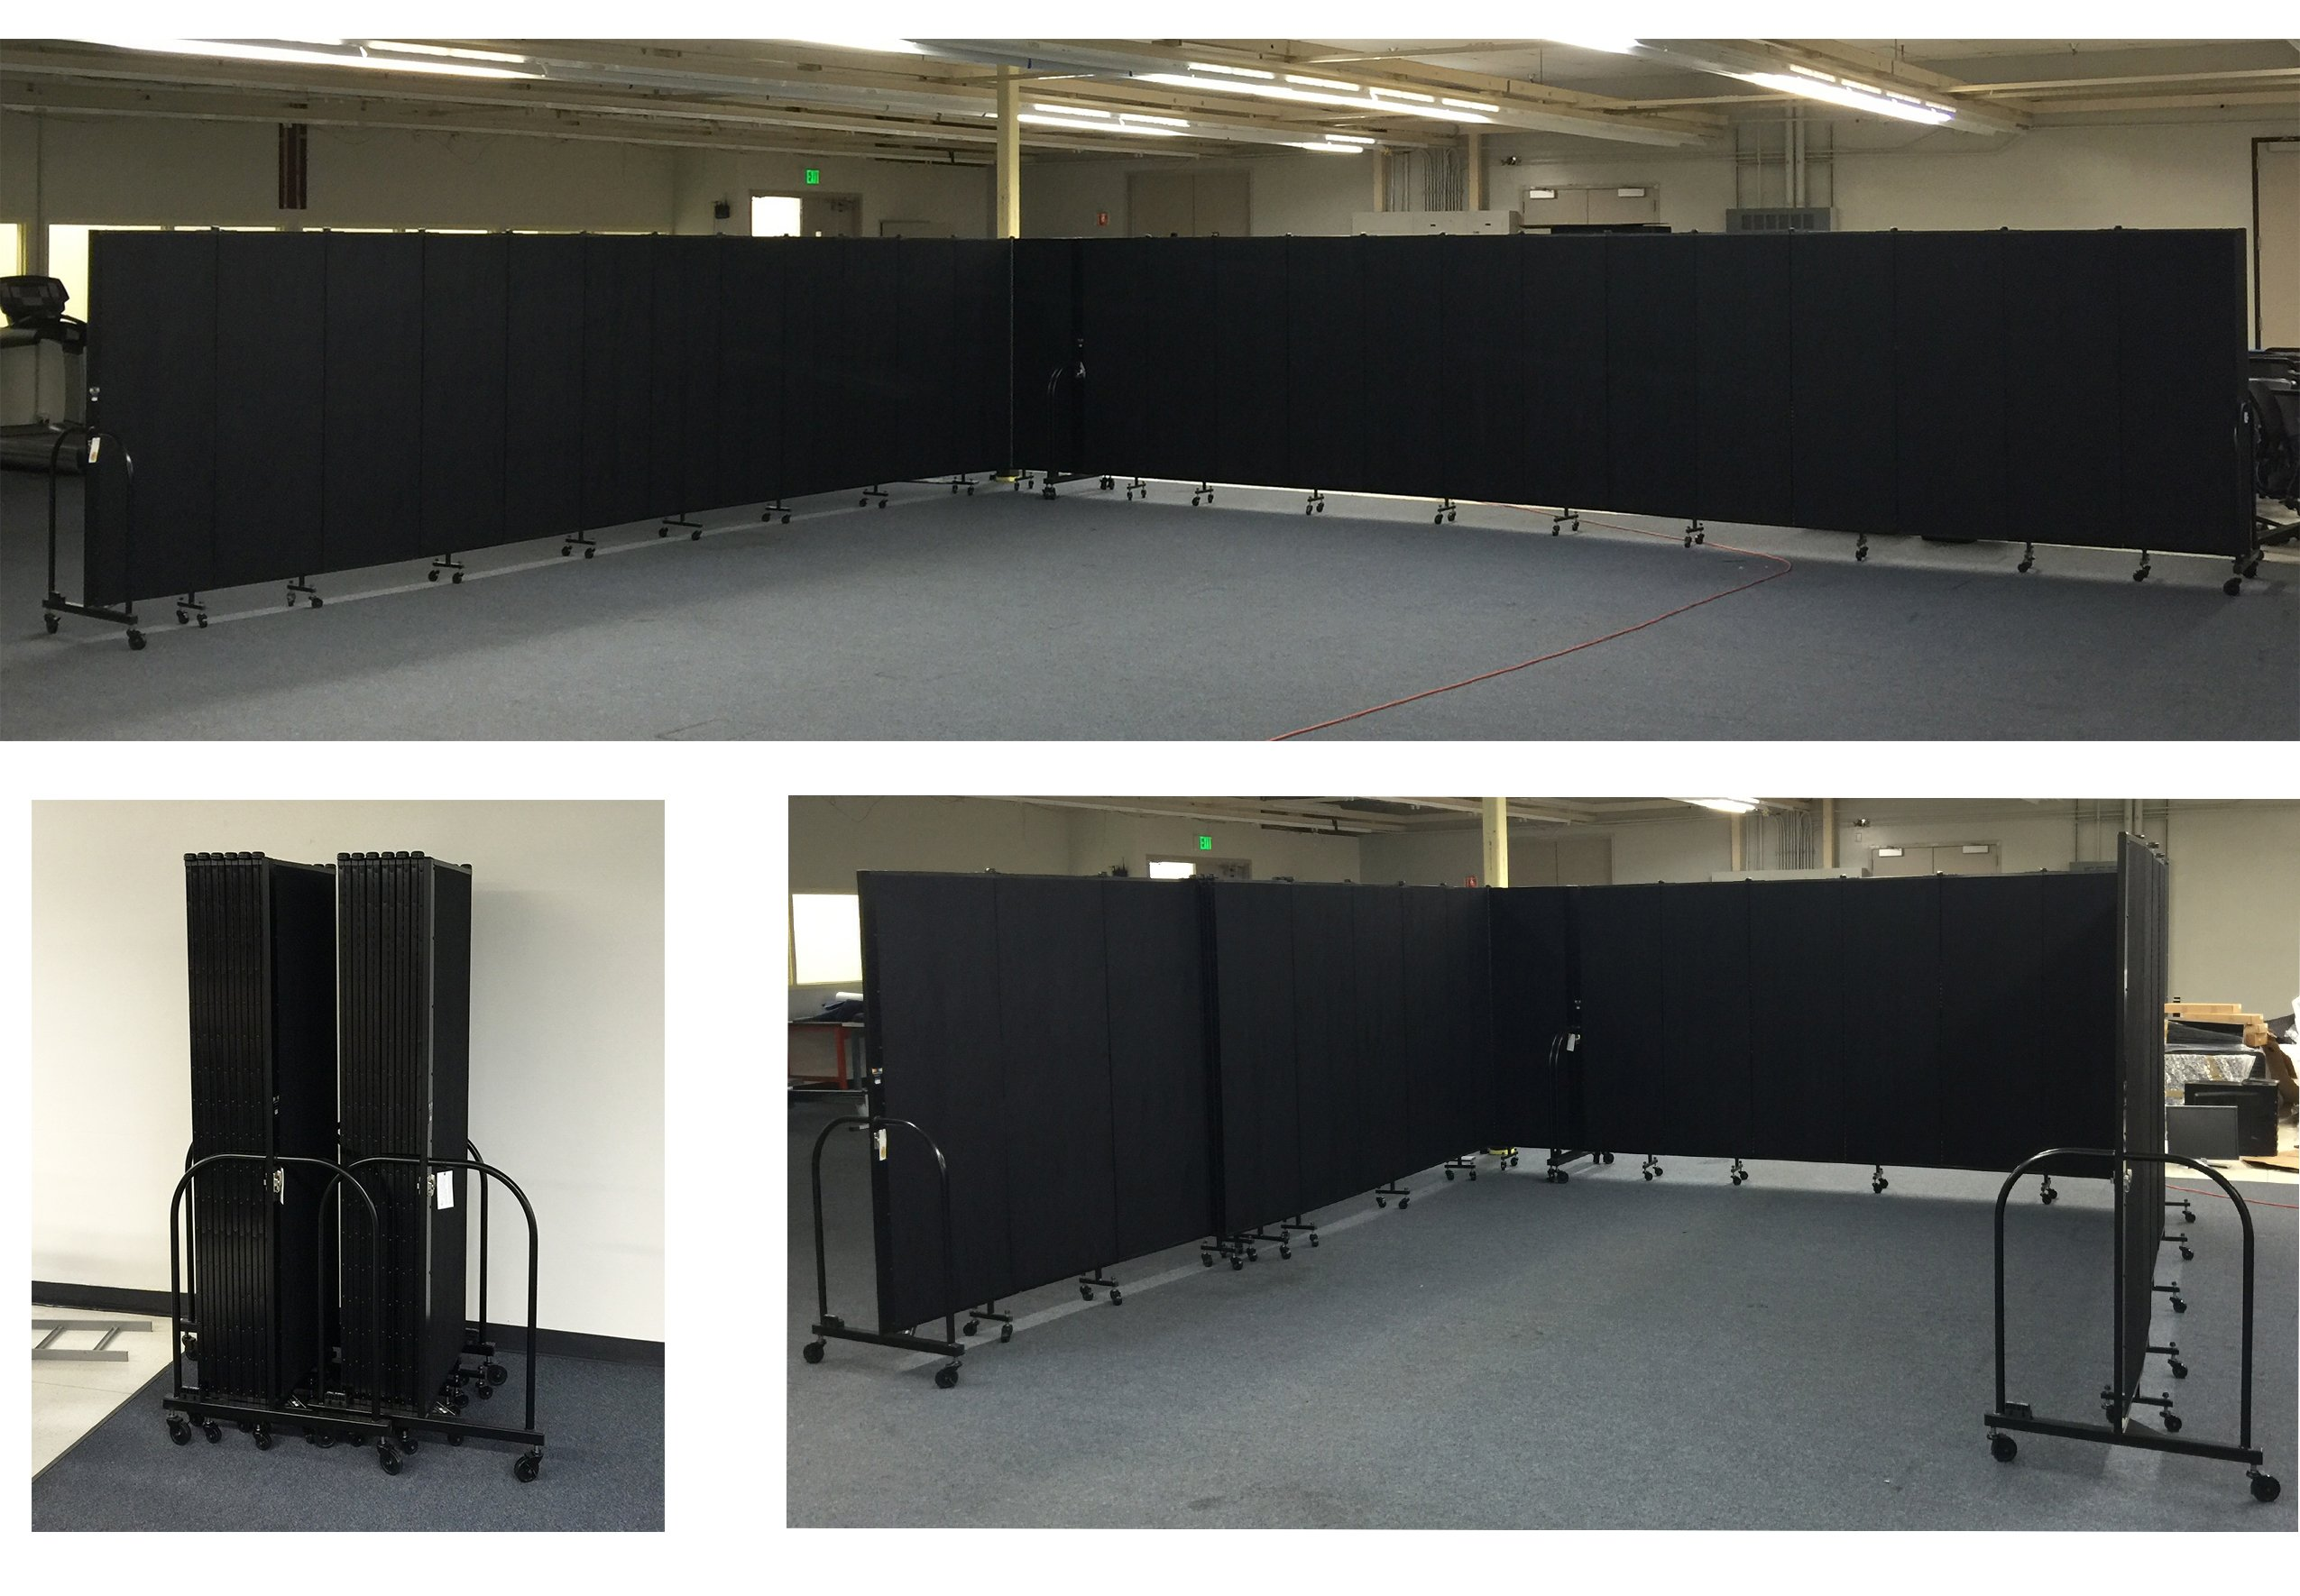 Rolling partition walls separate a large room into smaller classrooms